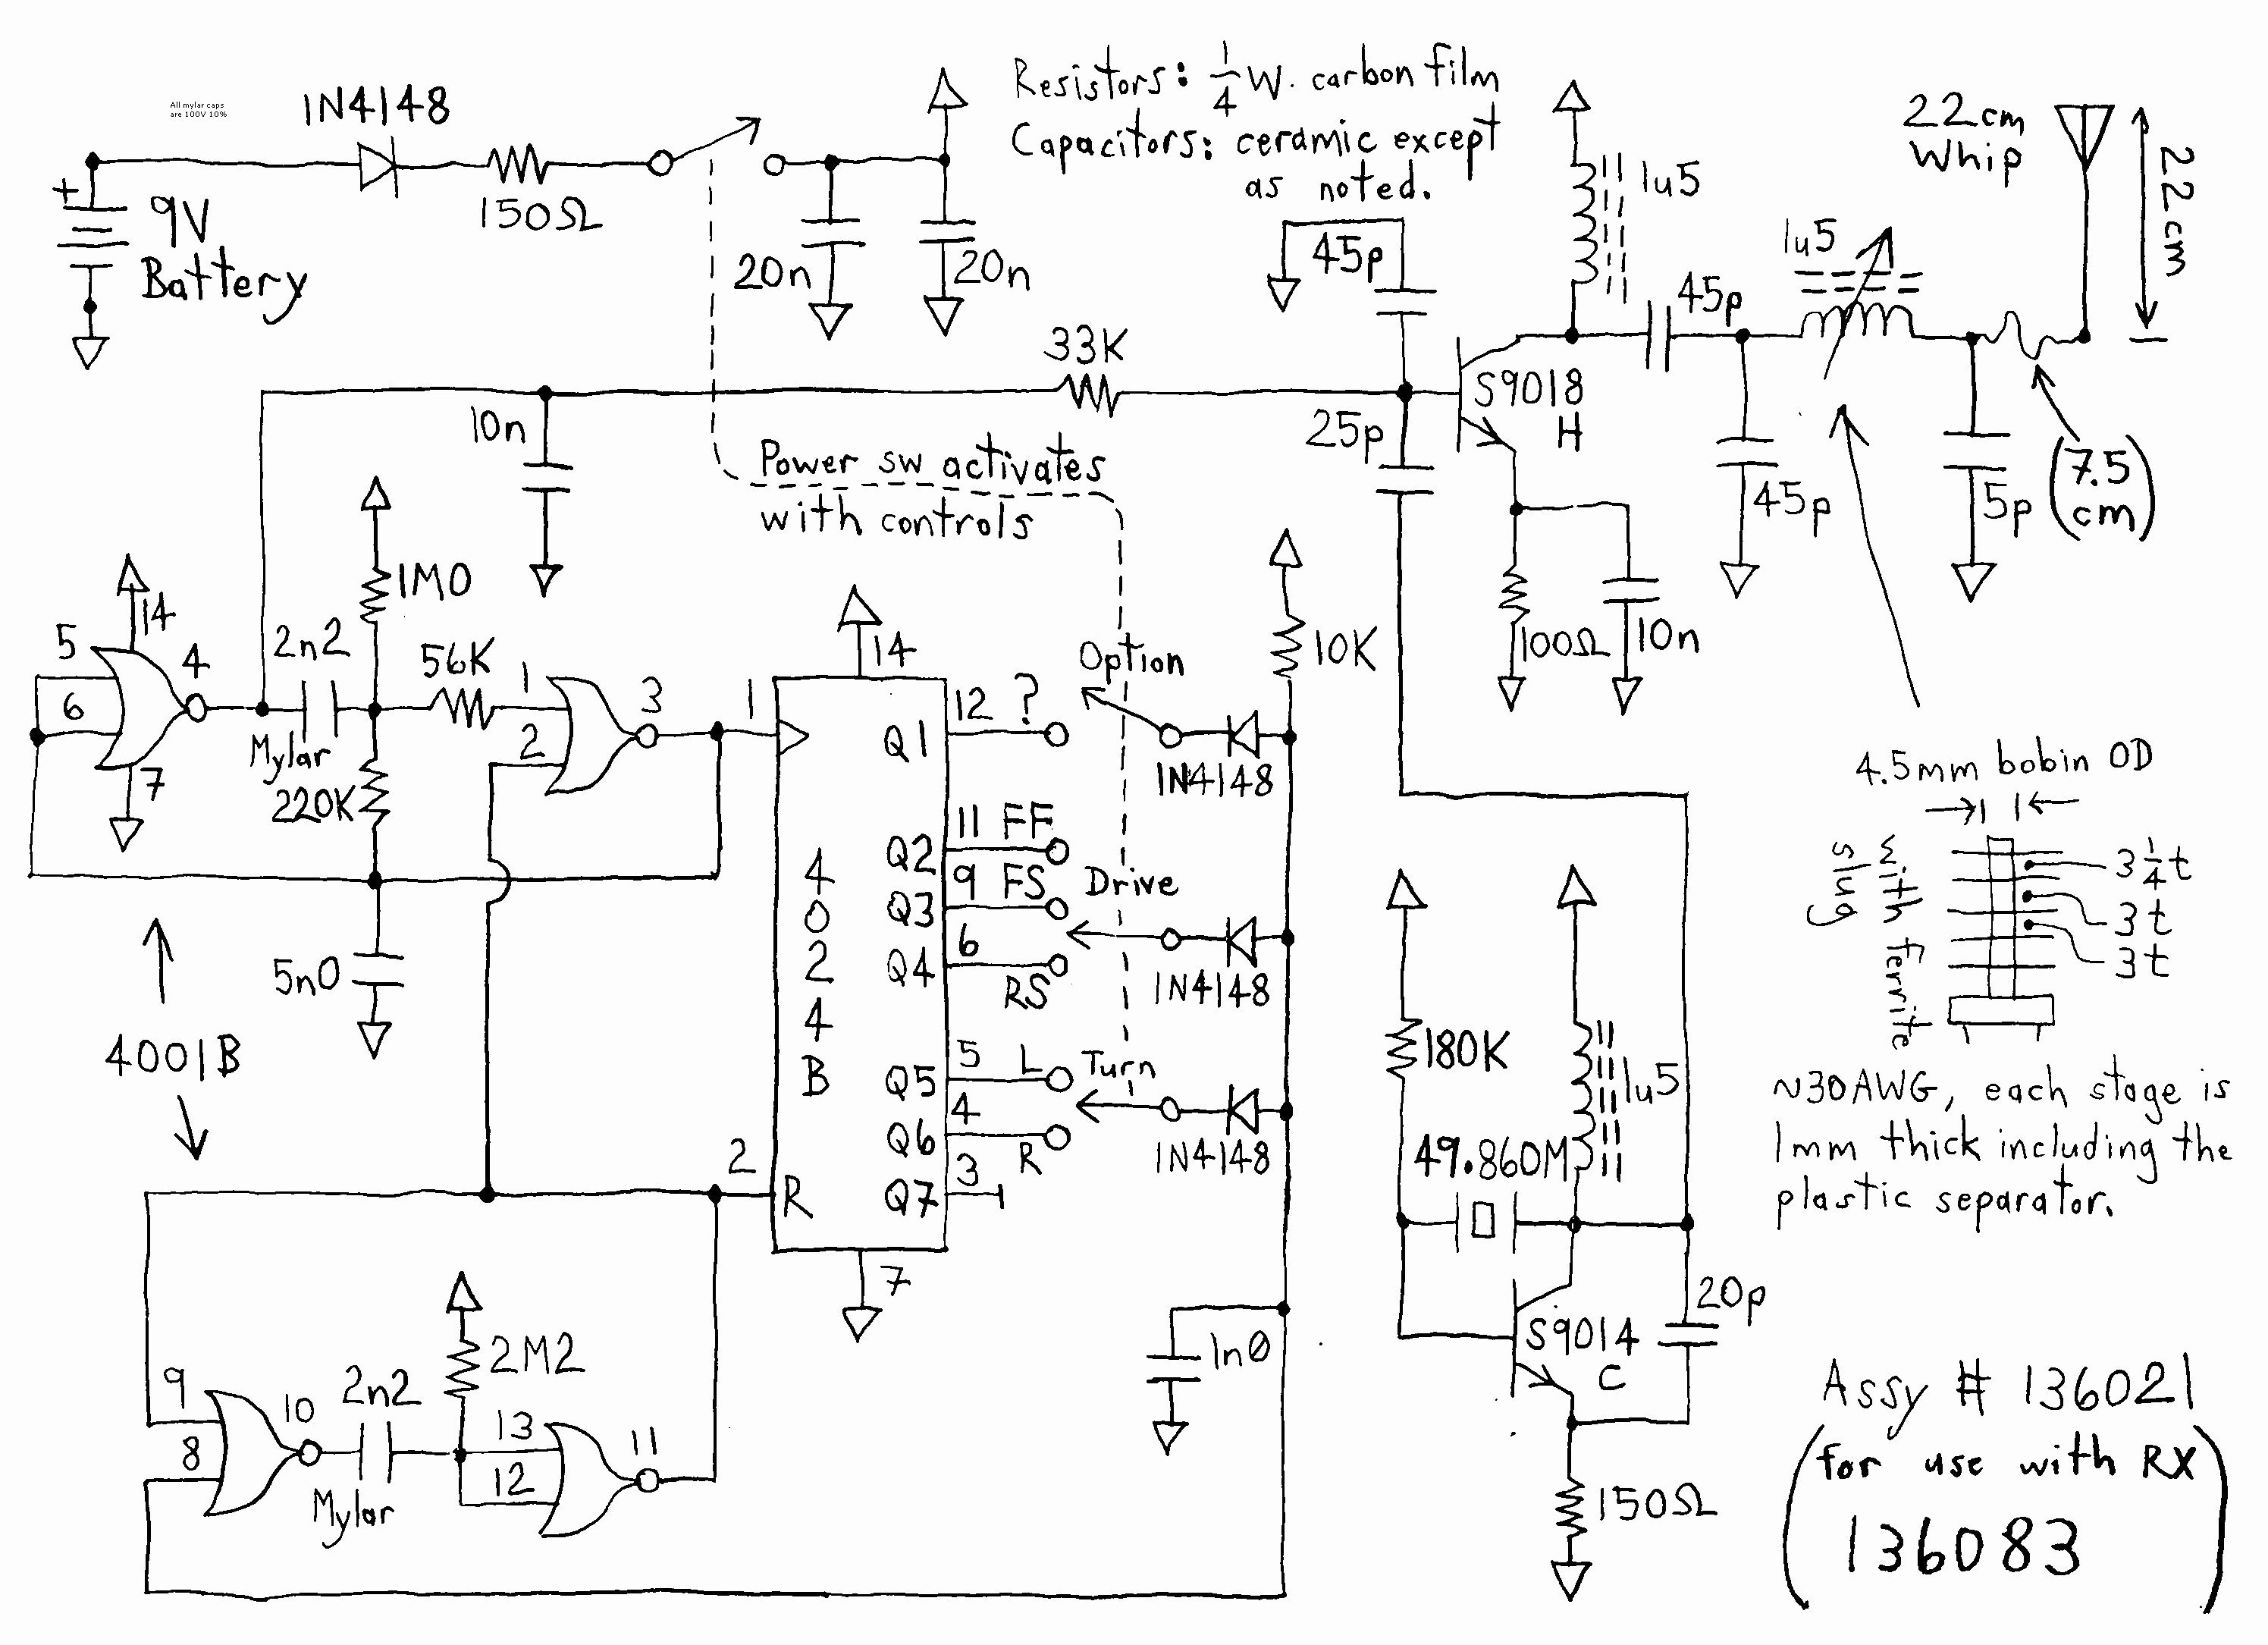 Trailer Wiring Diagram 5 Core South Africa | Wiring Diagram - Trailer Plug Wiring Diagram Sa